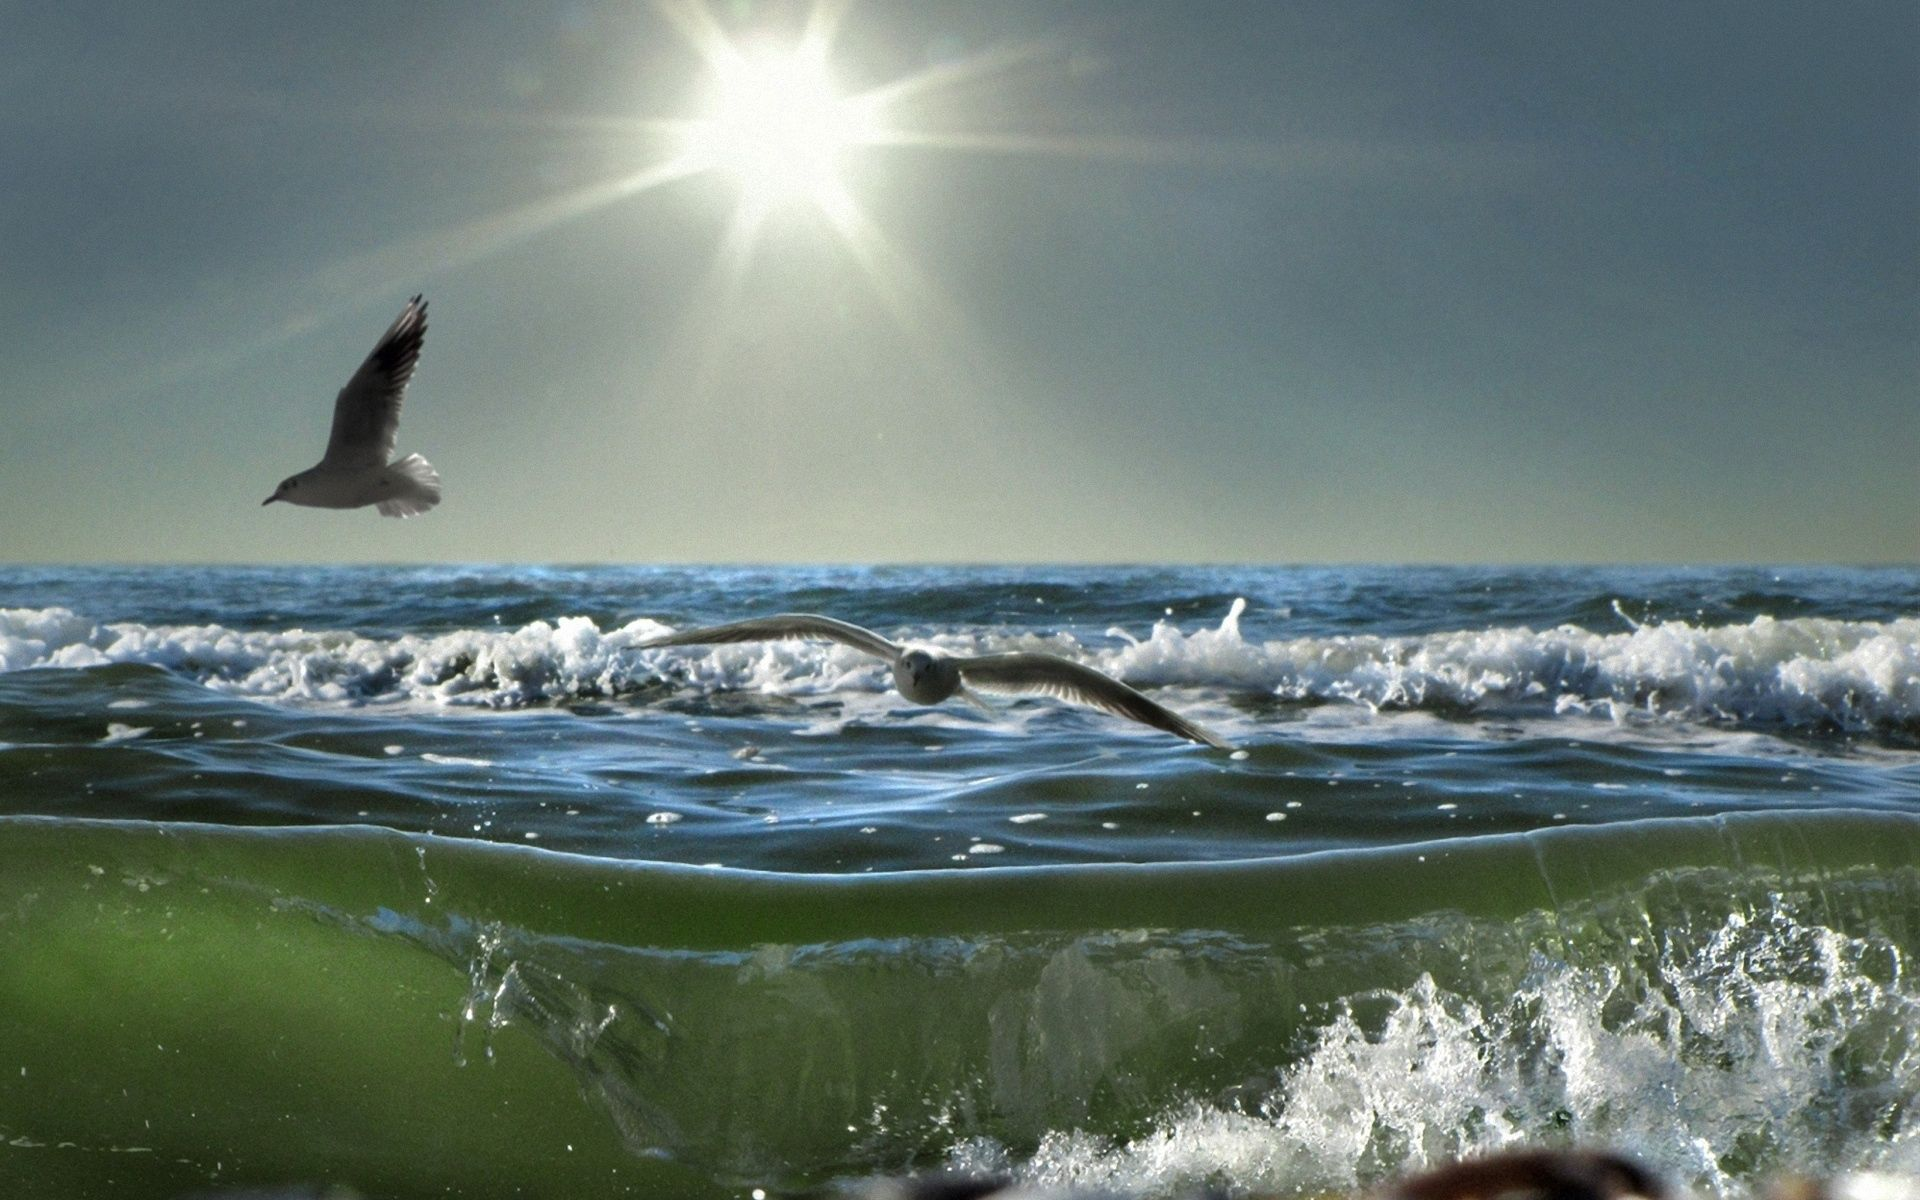 91001 download wallpaper Nature, Birds, Sea, Sun, Seagulls, Waves, Shine, Light, Spray, Day screensavers and pictures for free